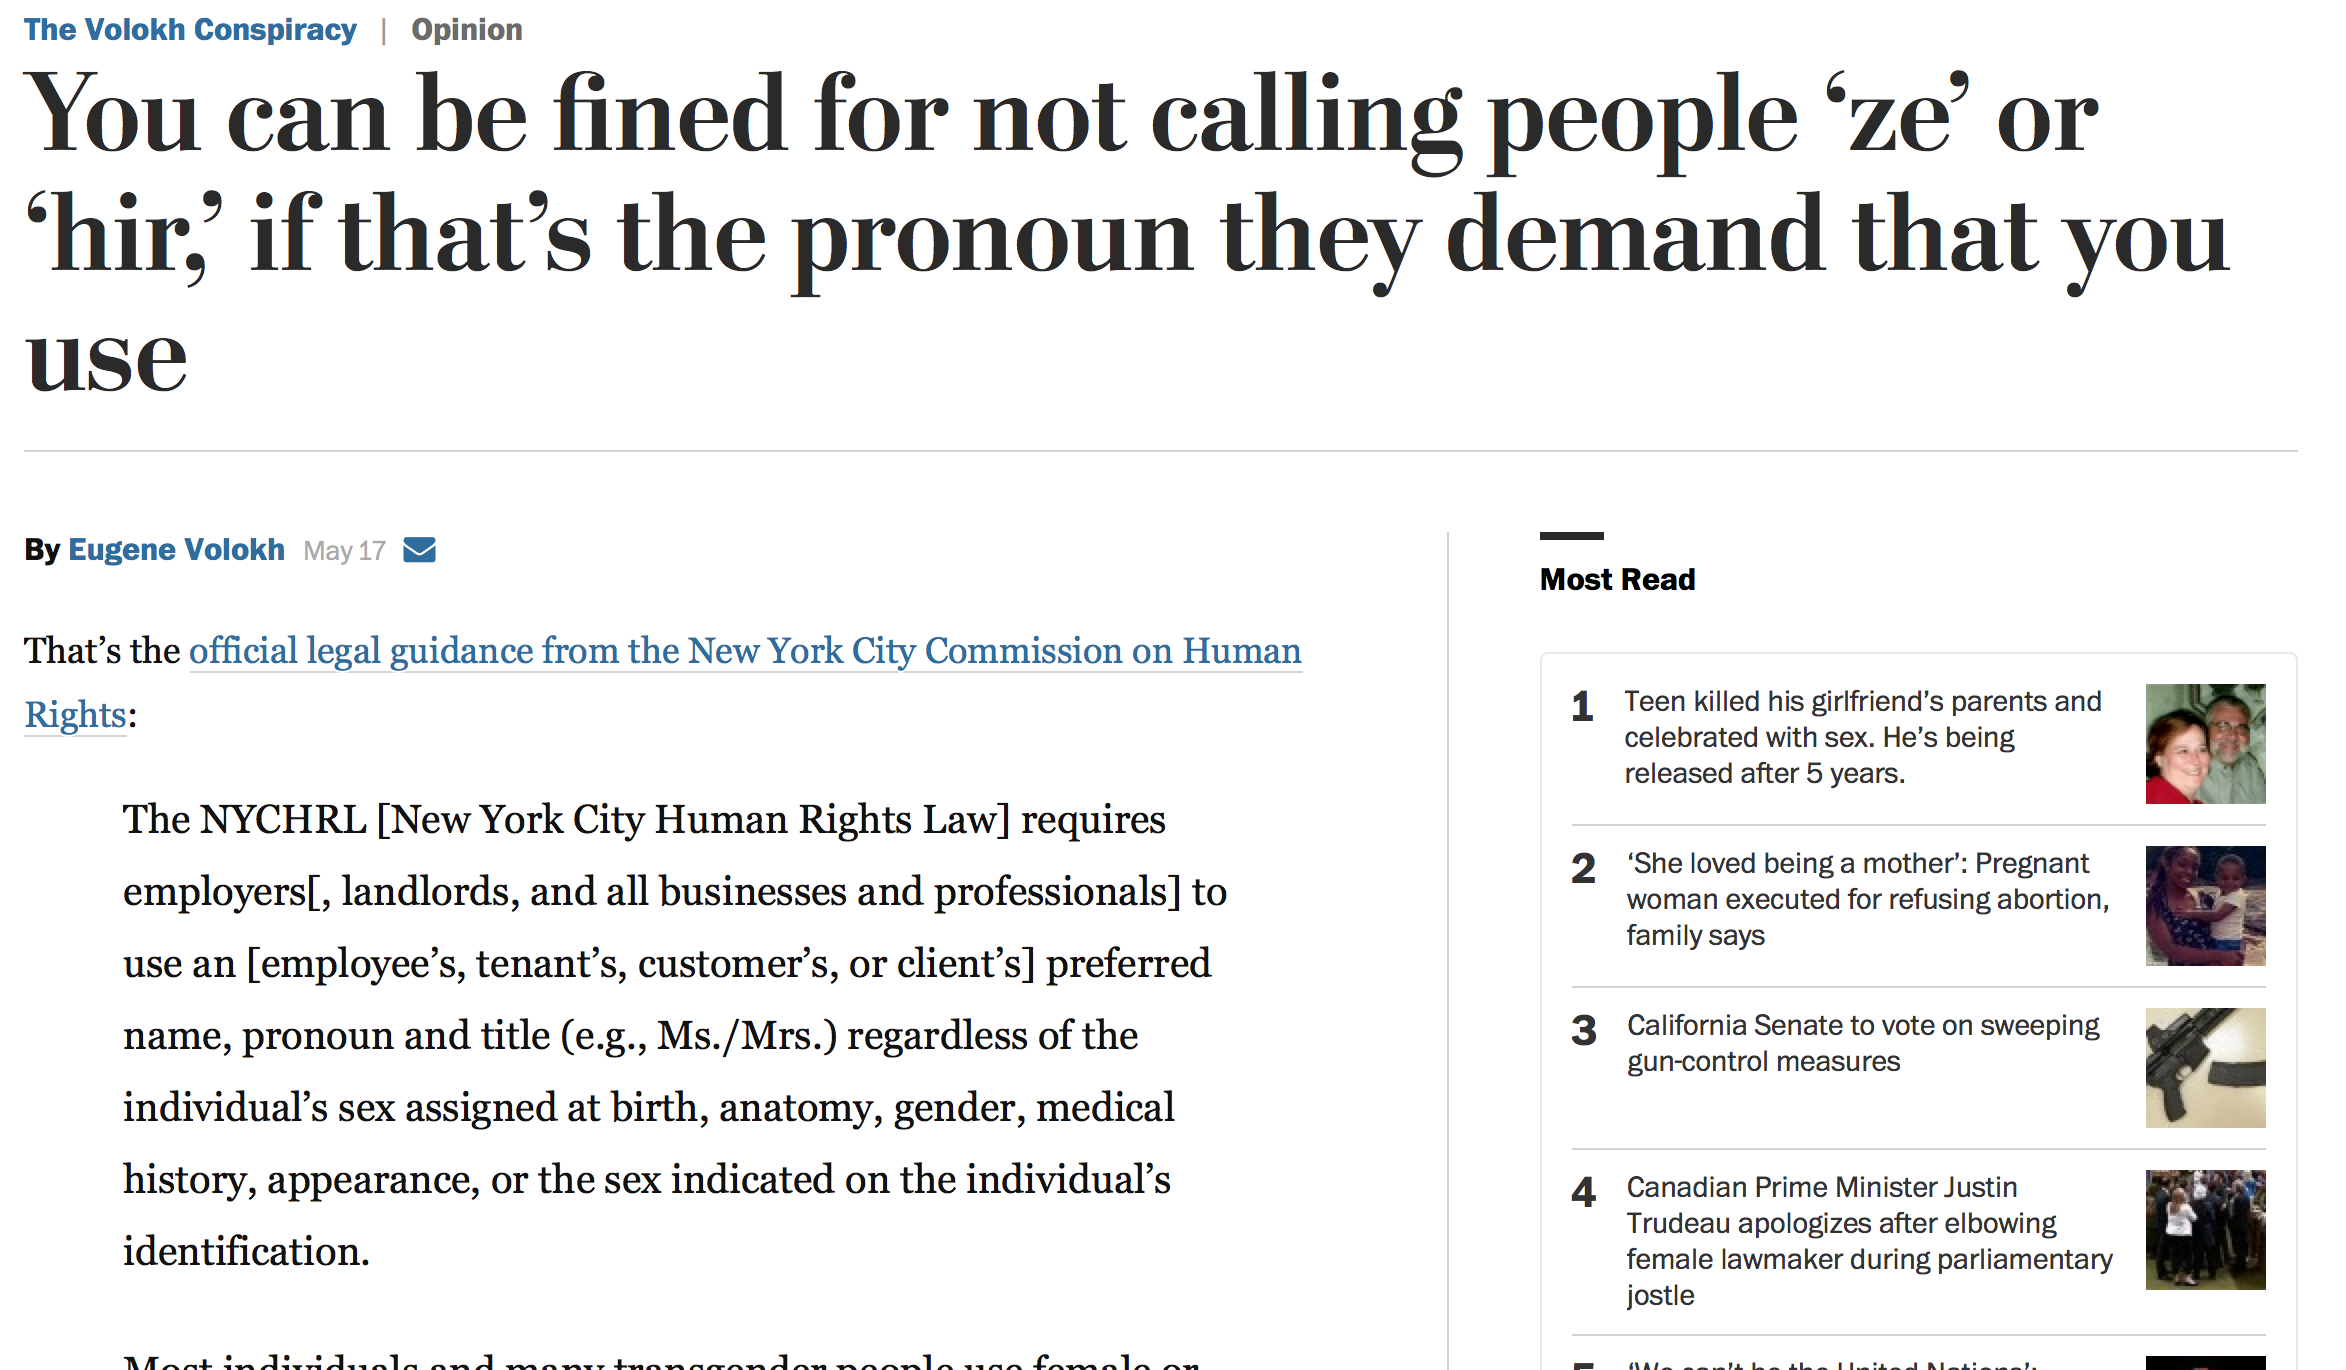 news volokh conspiracy fined calling people thats pronoun they demand that